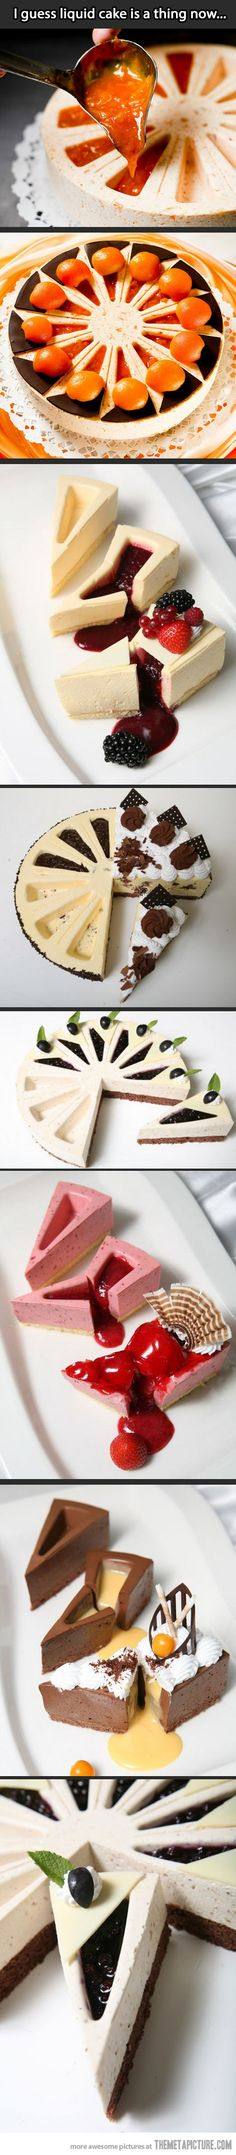 These cakes are a thing now…